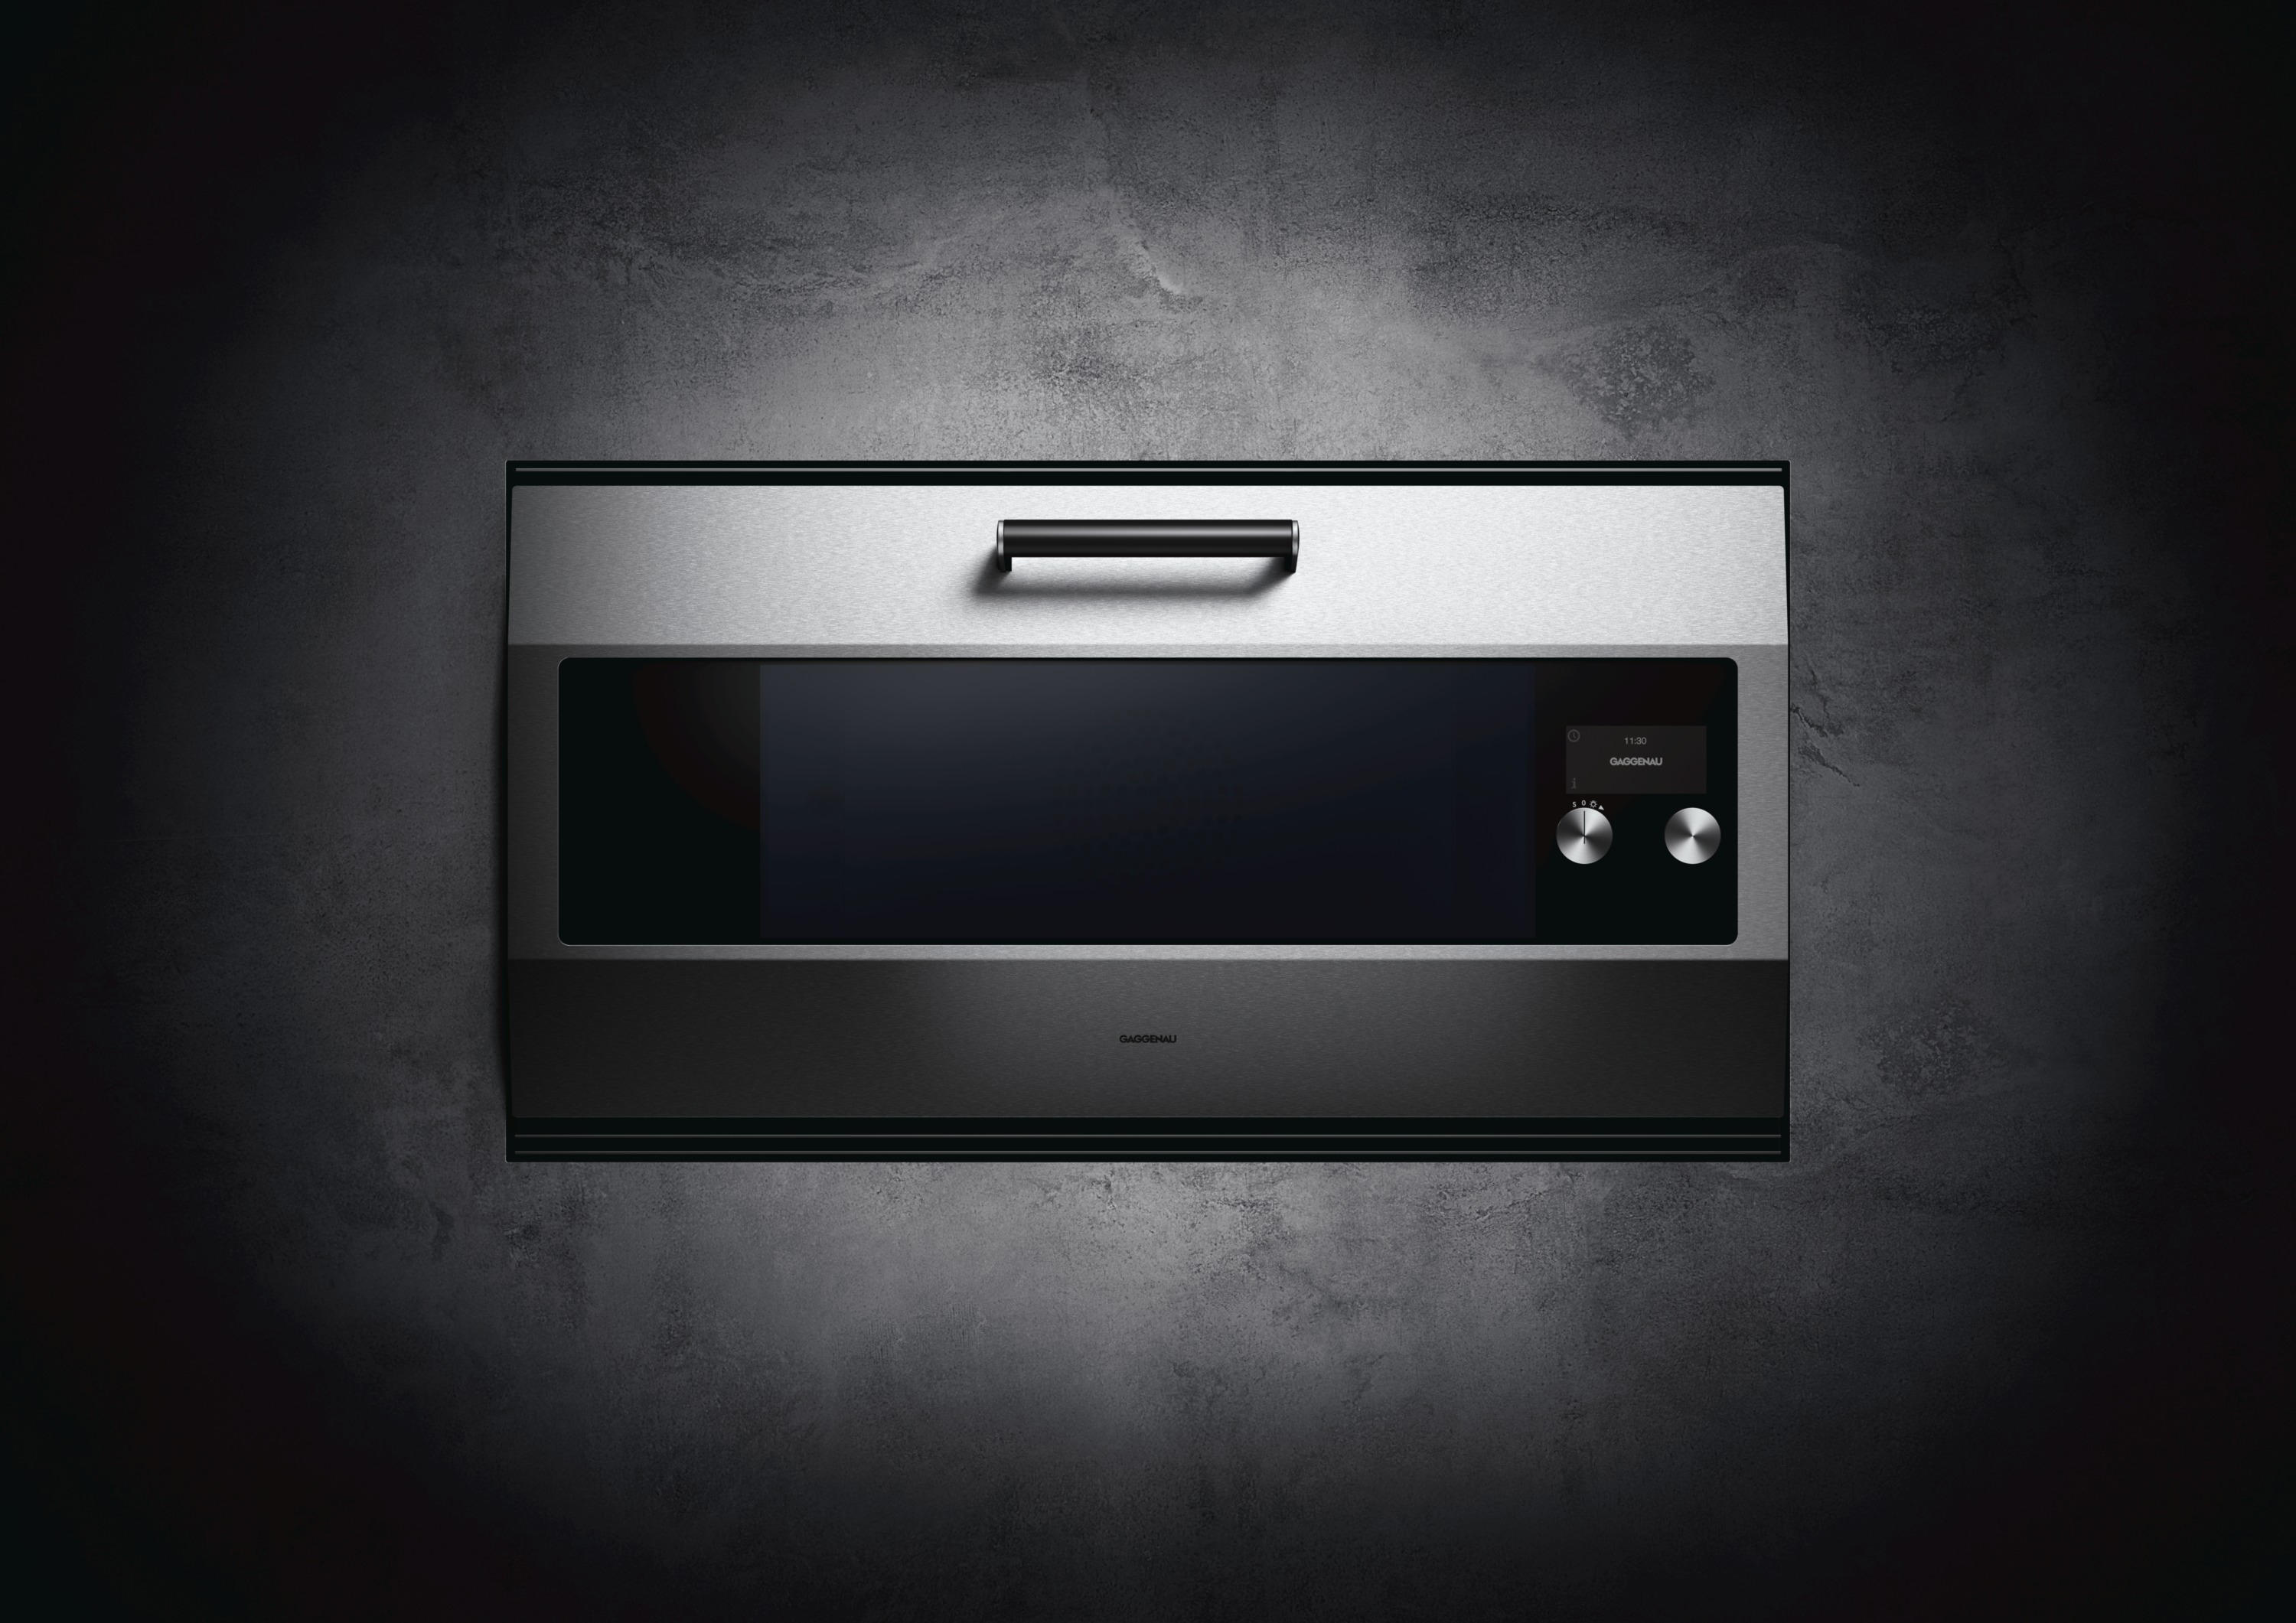 Oven Eb 333 Ovens From Gaggenau Architonic